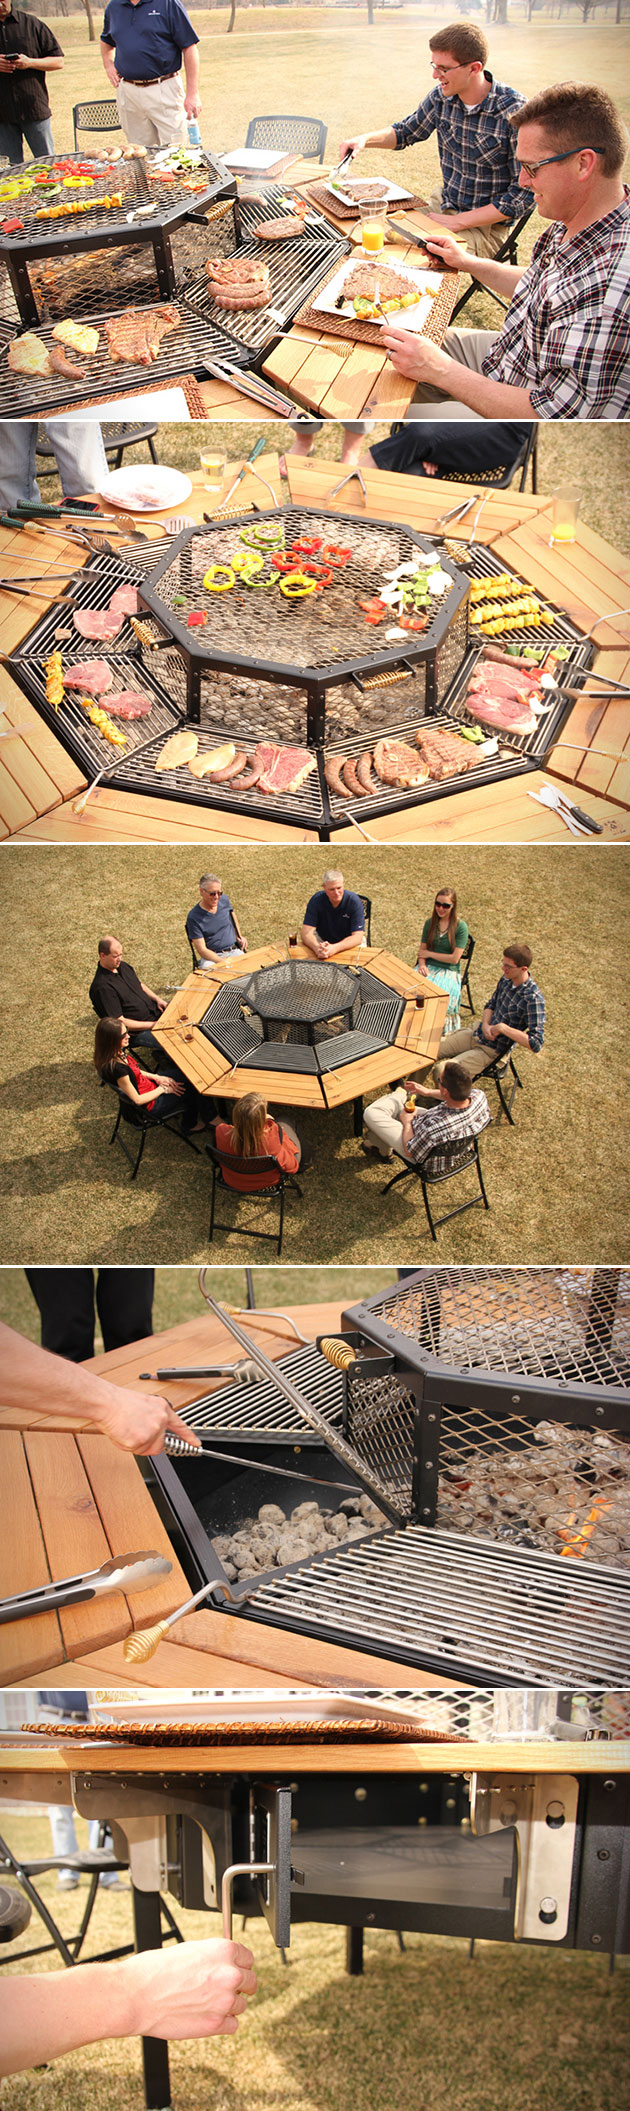 jag-bbq-grill-table-for-8